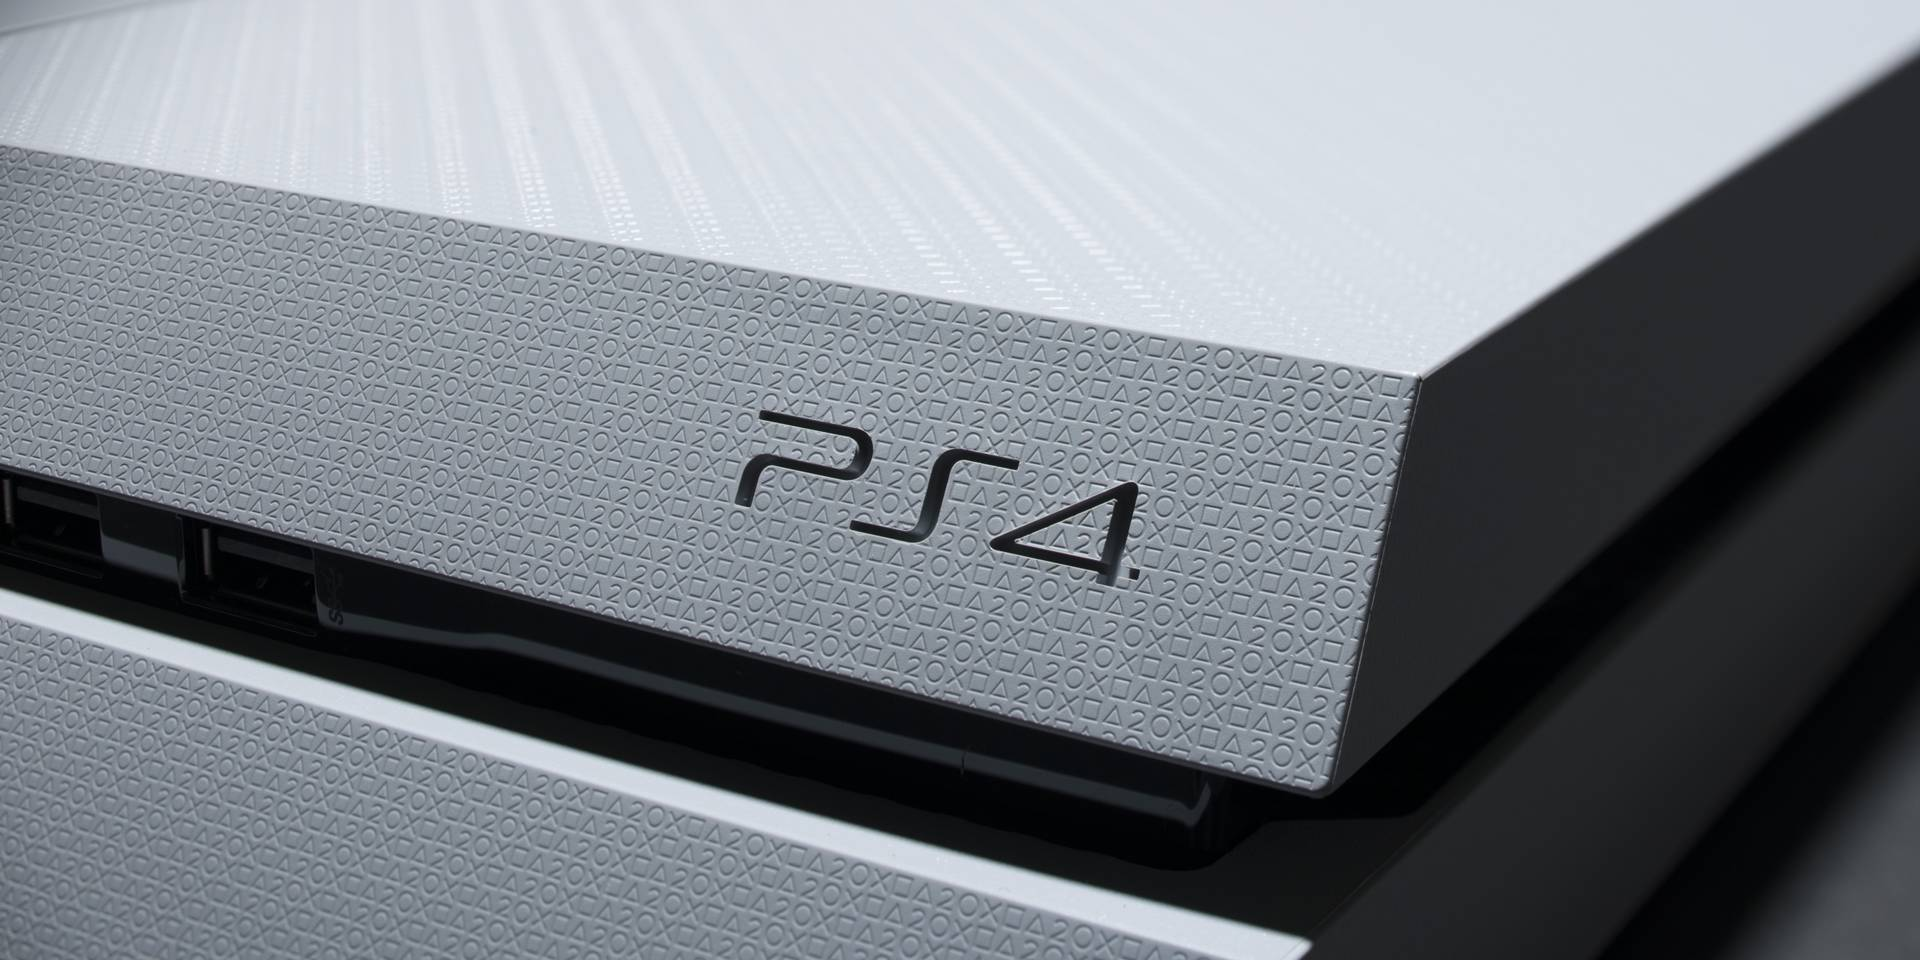 PlayStation 4K Release Window Reportedly Revealed QbJ6VrXv ps4 game console sony playstation 4 99973 2560x1440.large